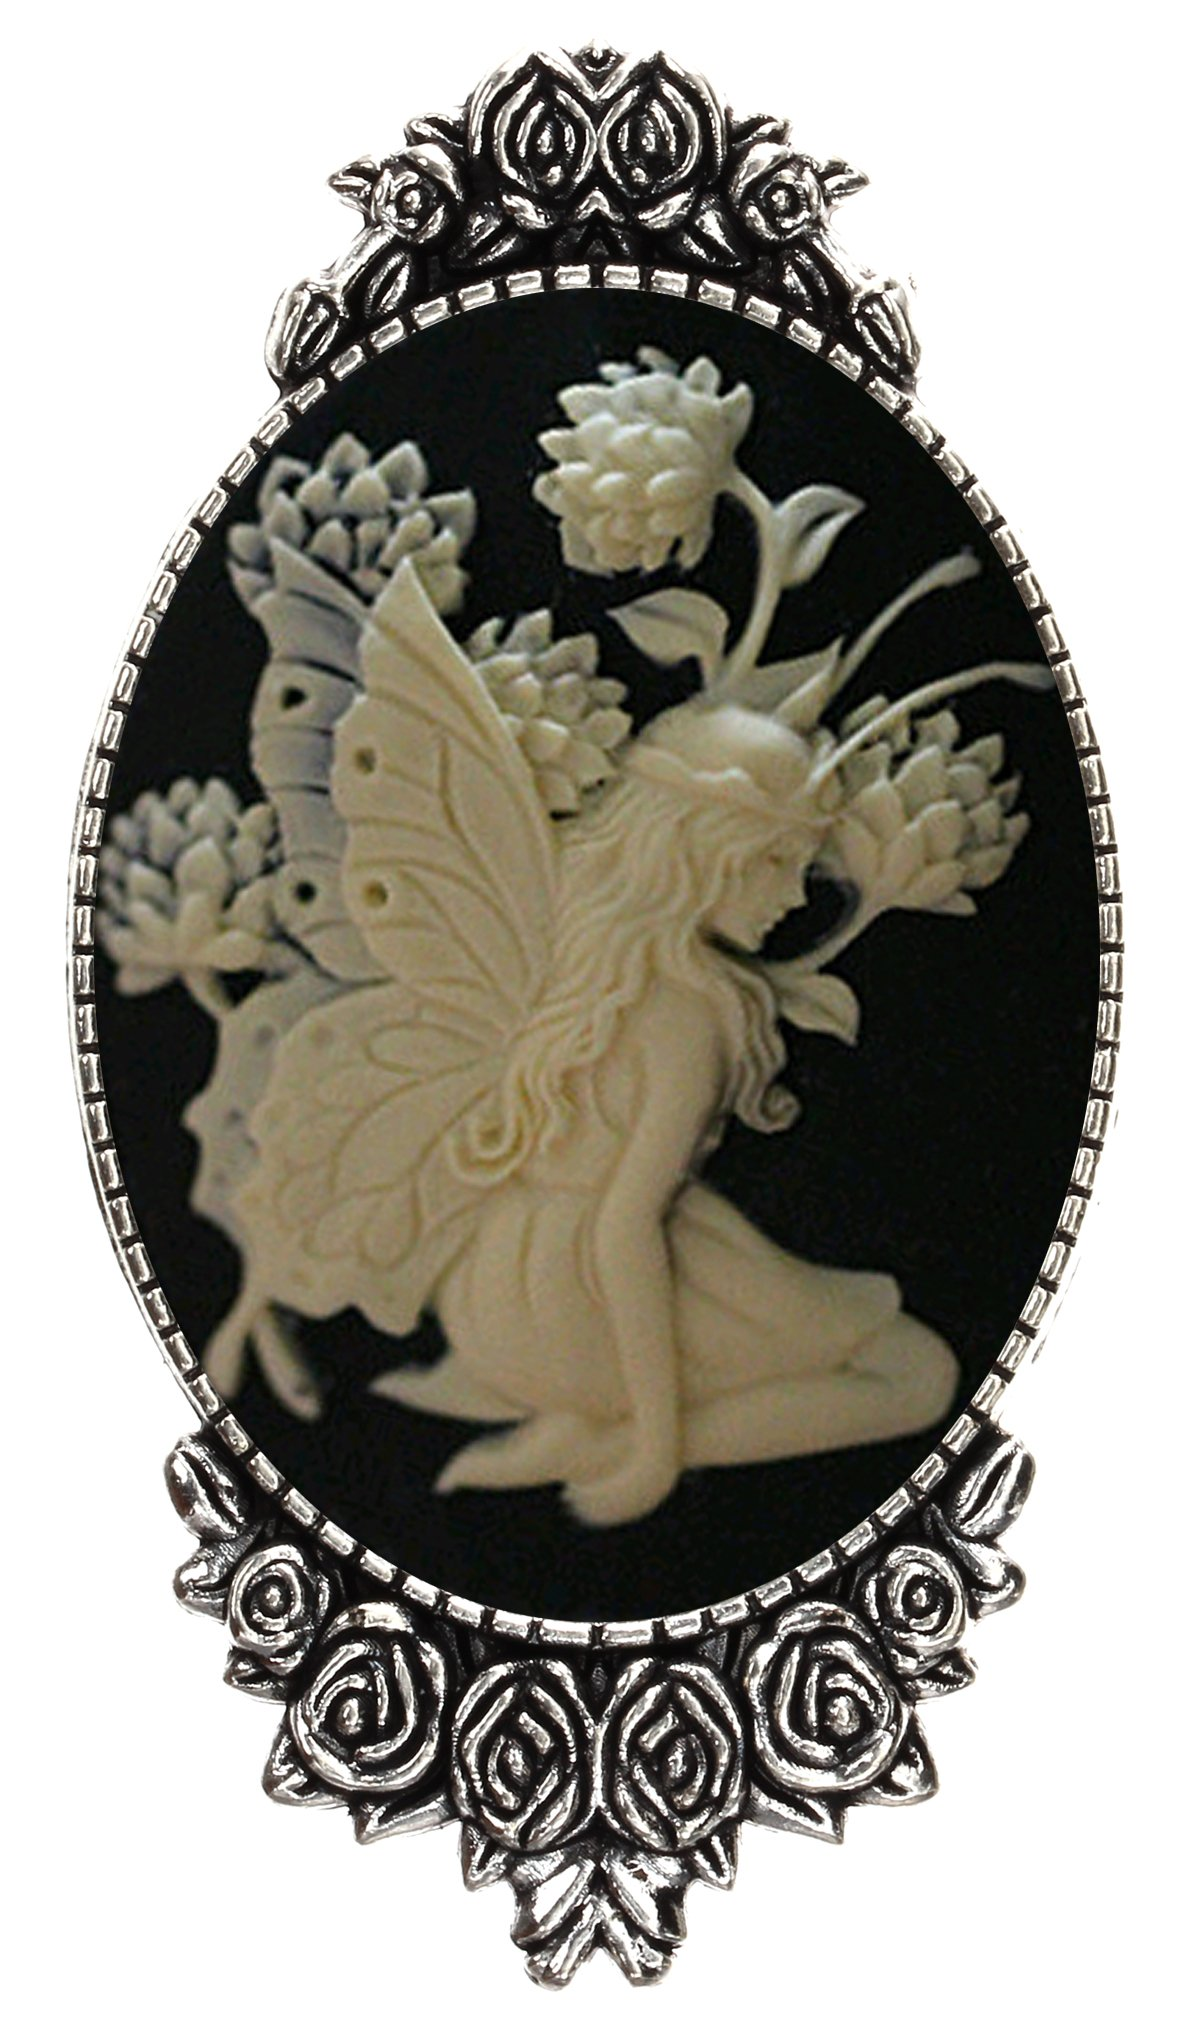 Lotus Butterfly Brooch Pin Rose Decor Antique Silver Fairy Angel Jewelry Pouch for Gift